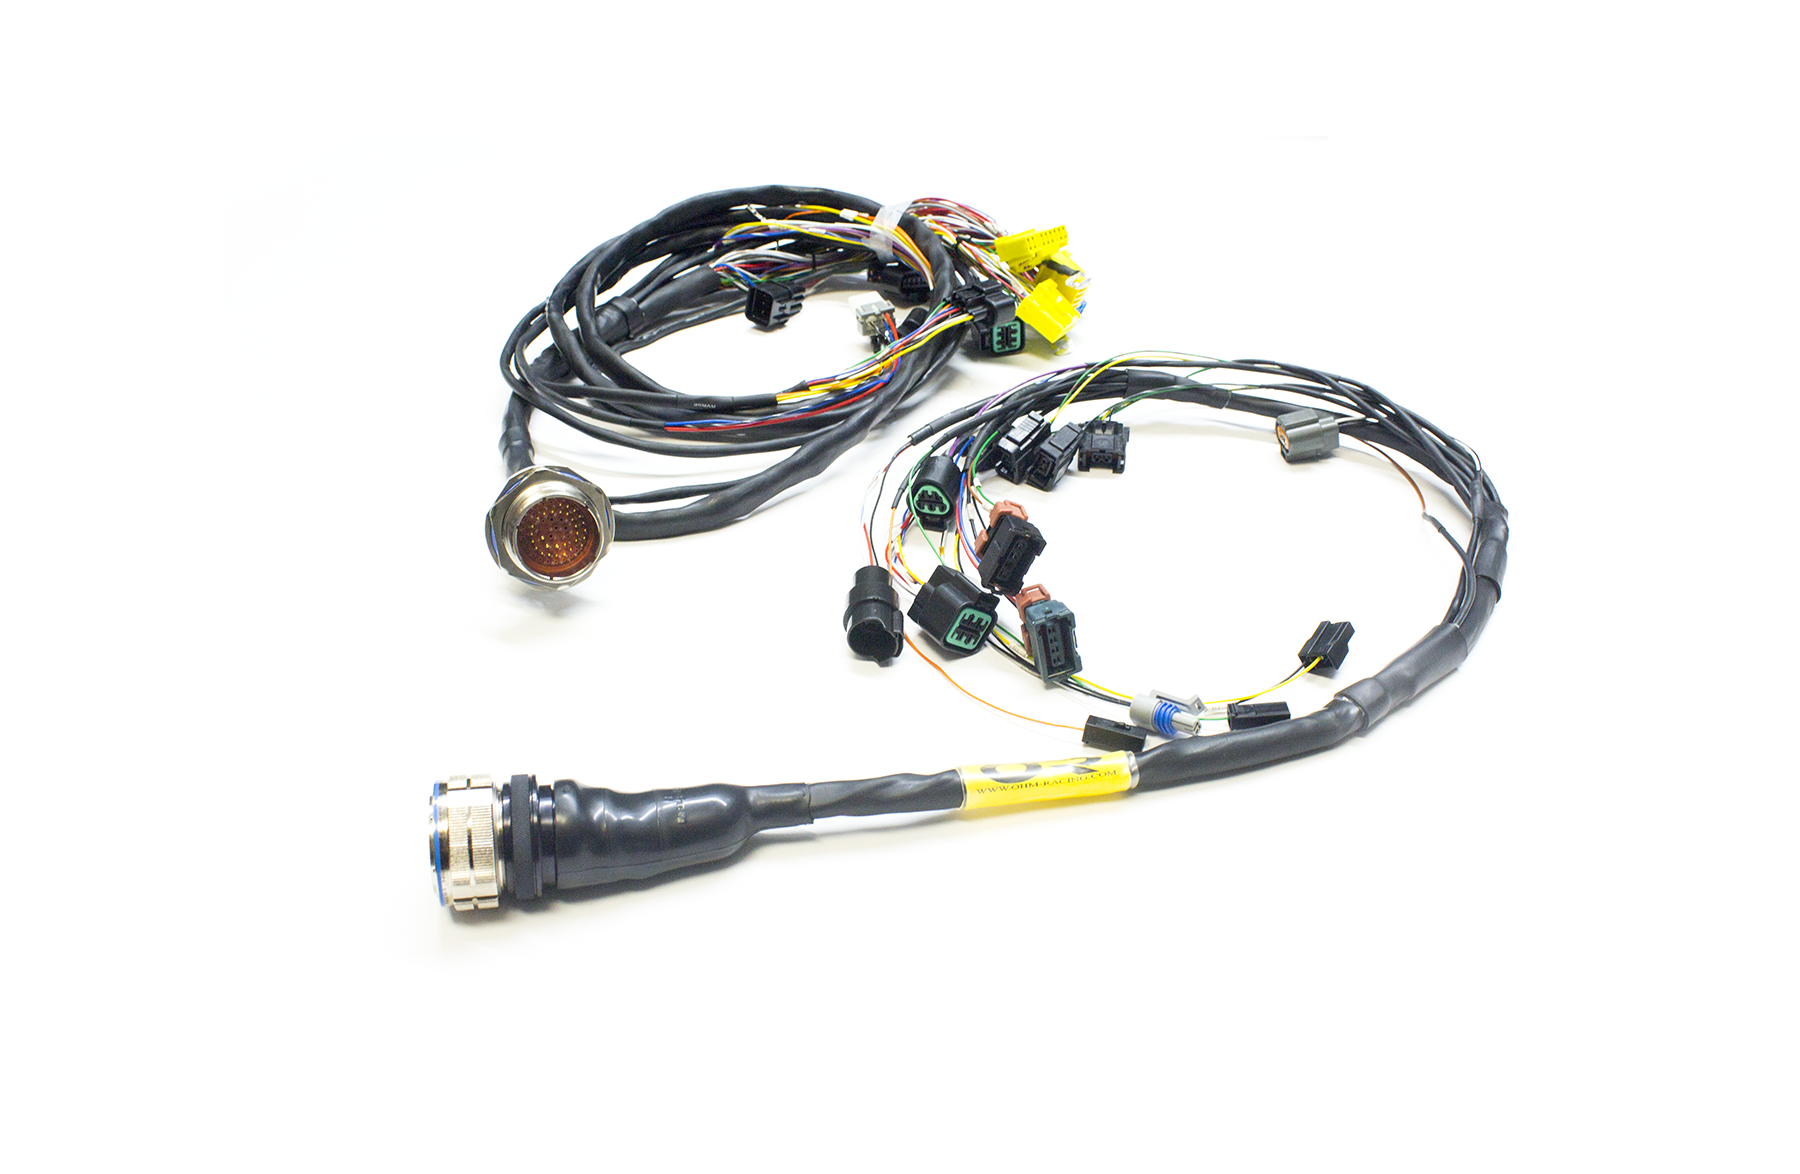 edited-for-website-1g-colt-harness  G Dsm Wiring Harness on body kit, wide body, rally car,